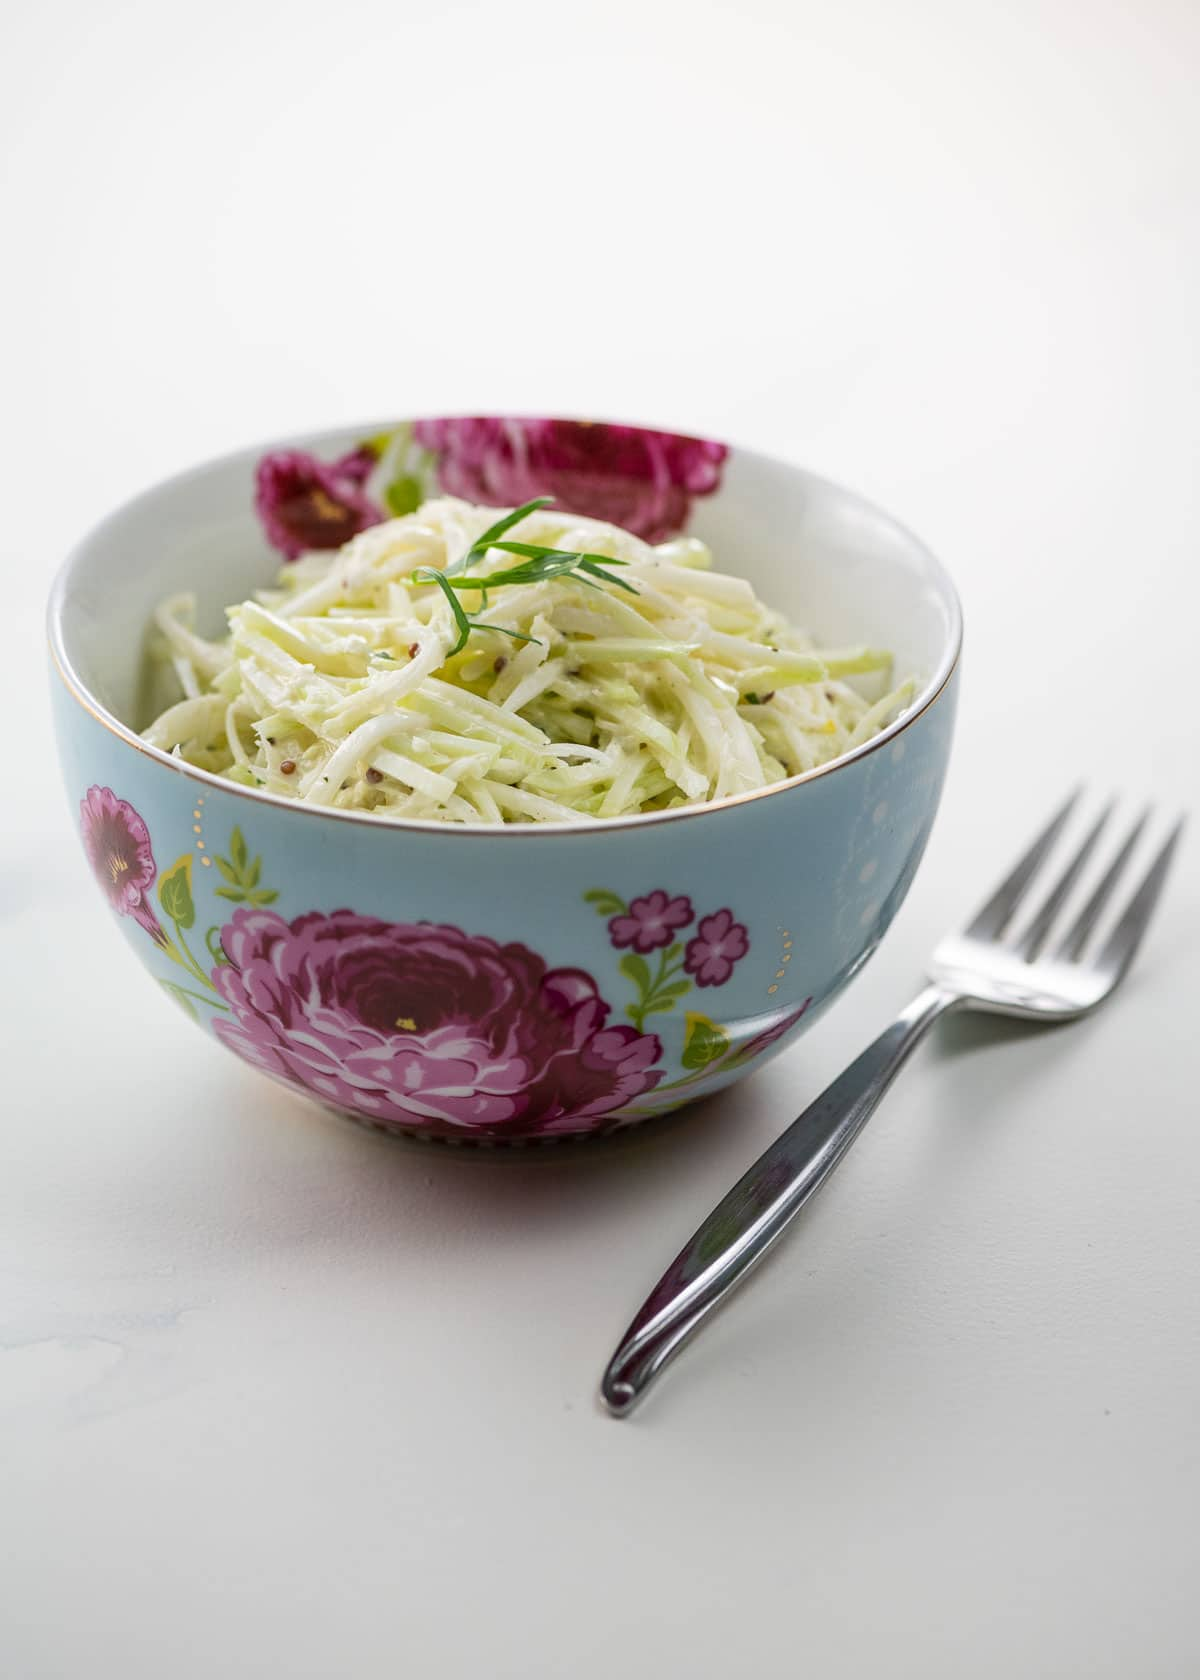 kohlrabi remoulade in a beautiful blue and pink bowl with a fork